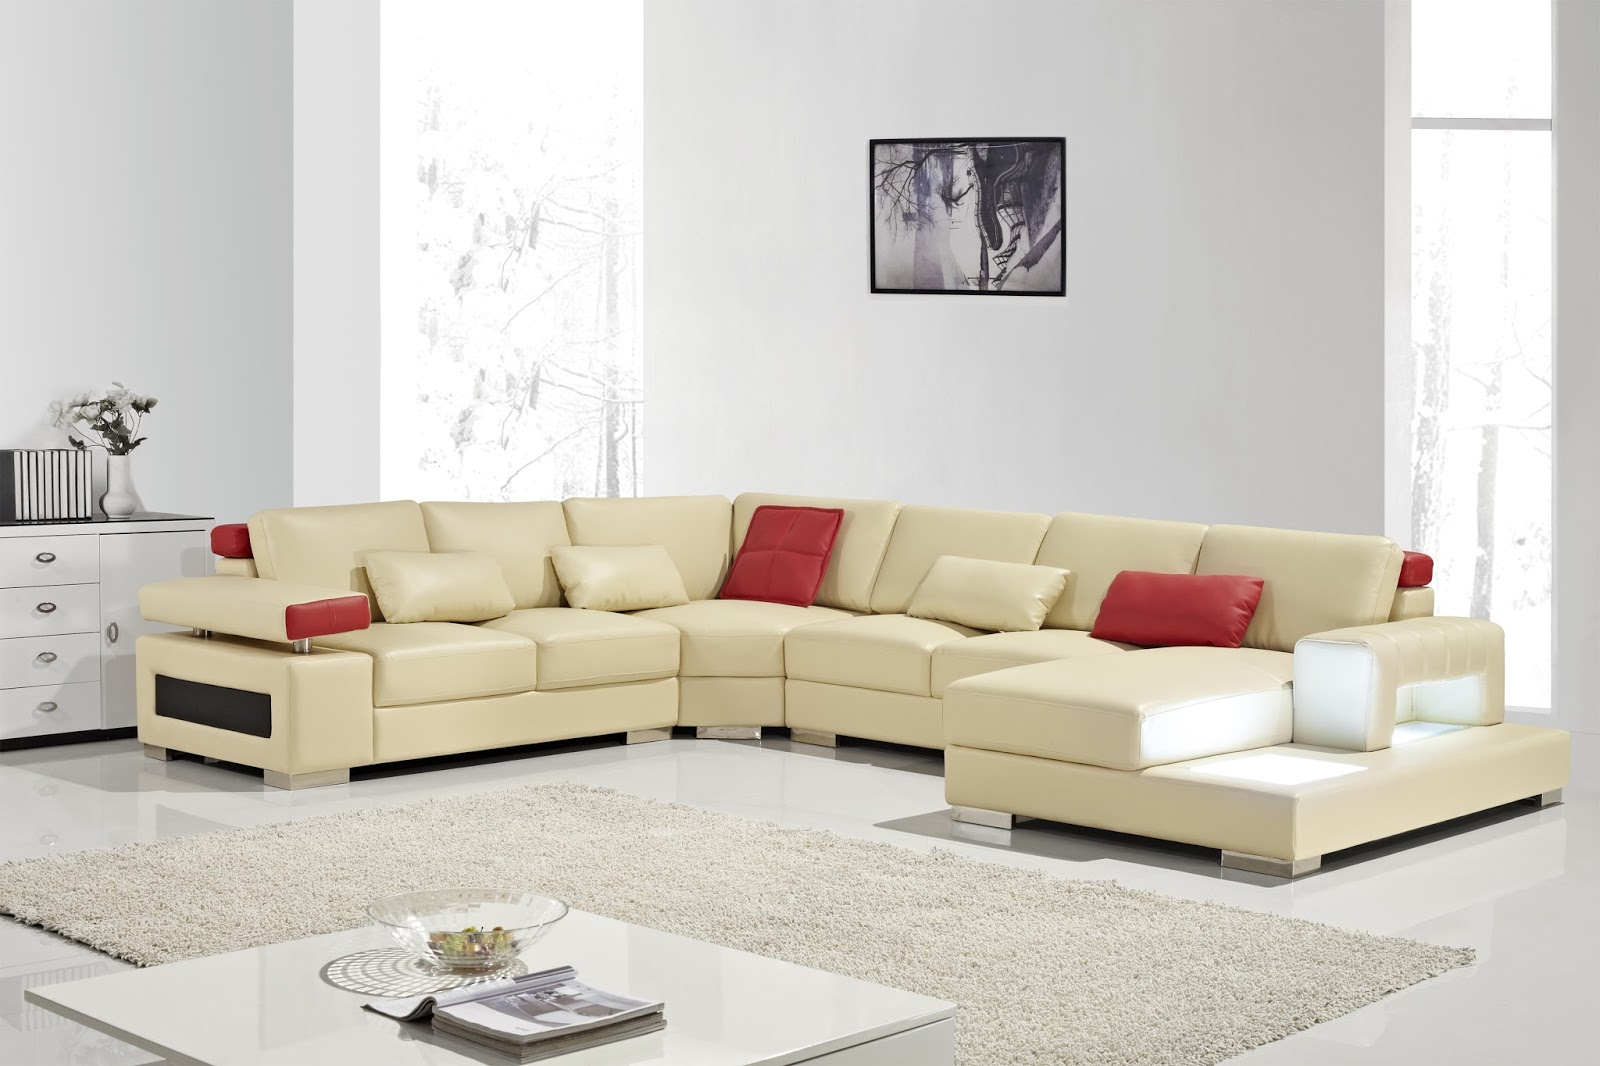 Several Online Companies Are Playing The Impressive Services For Providing Highest Quality Sofas To All Their Admirers There Uncountable Benefits Of